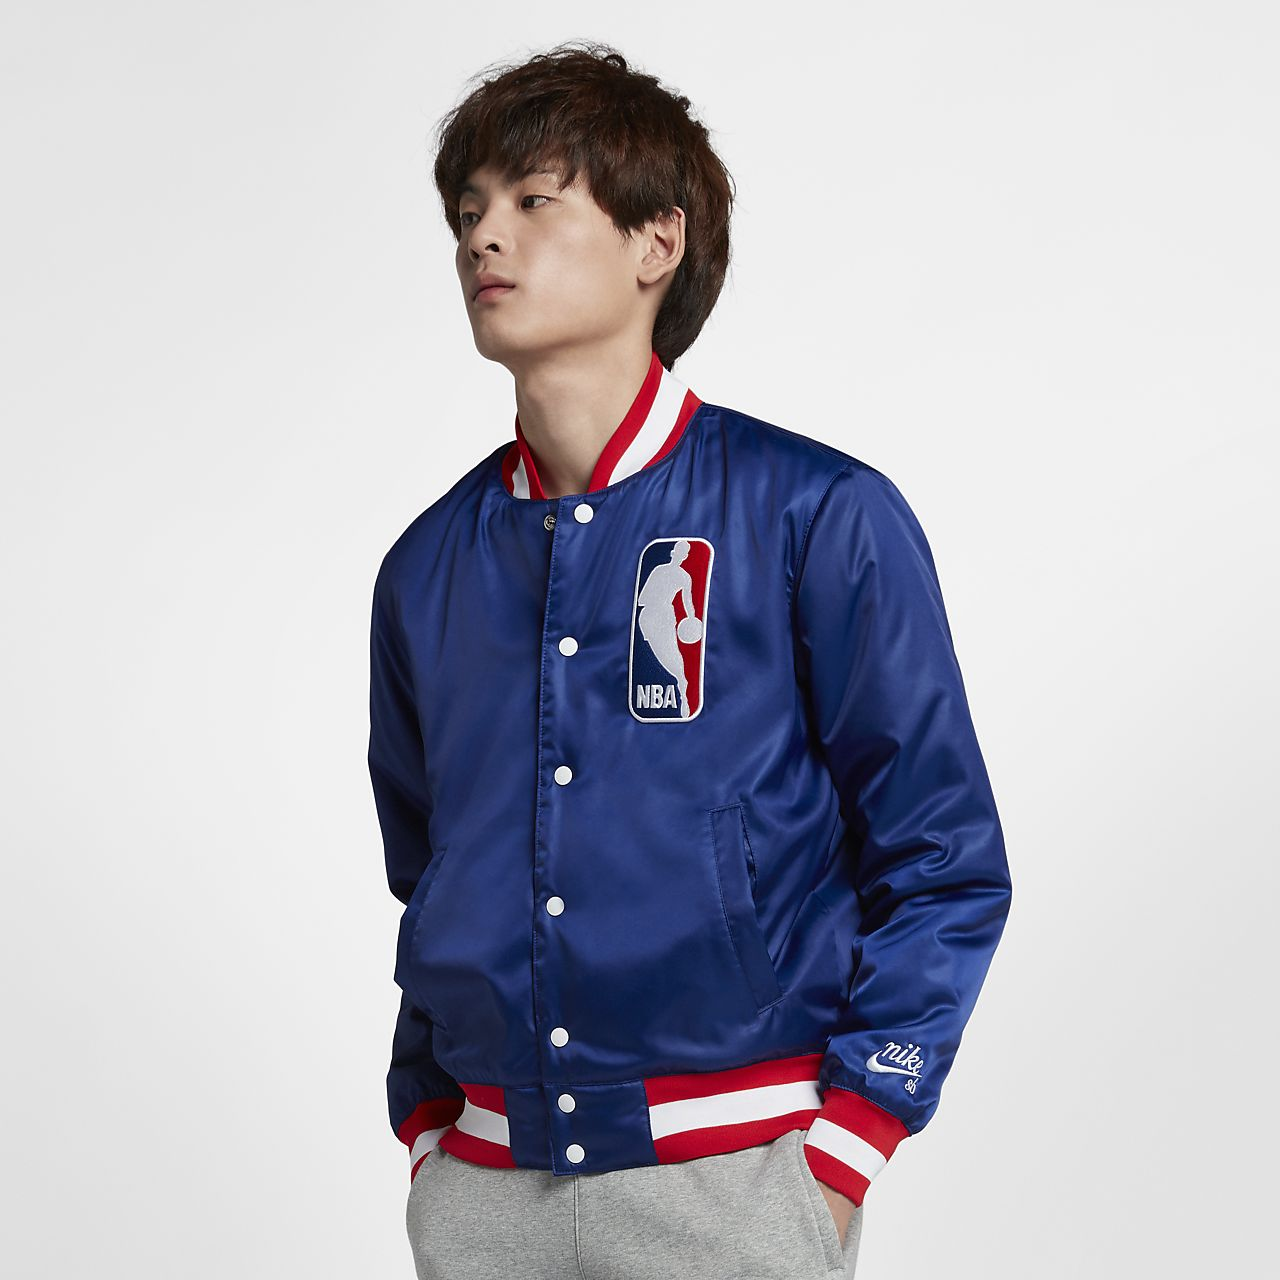 innovative design 62dac 3be64 ... Nike SB x NBA Men s Bomber Jacket